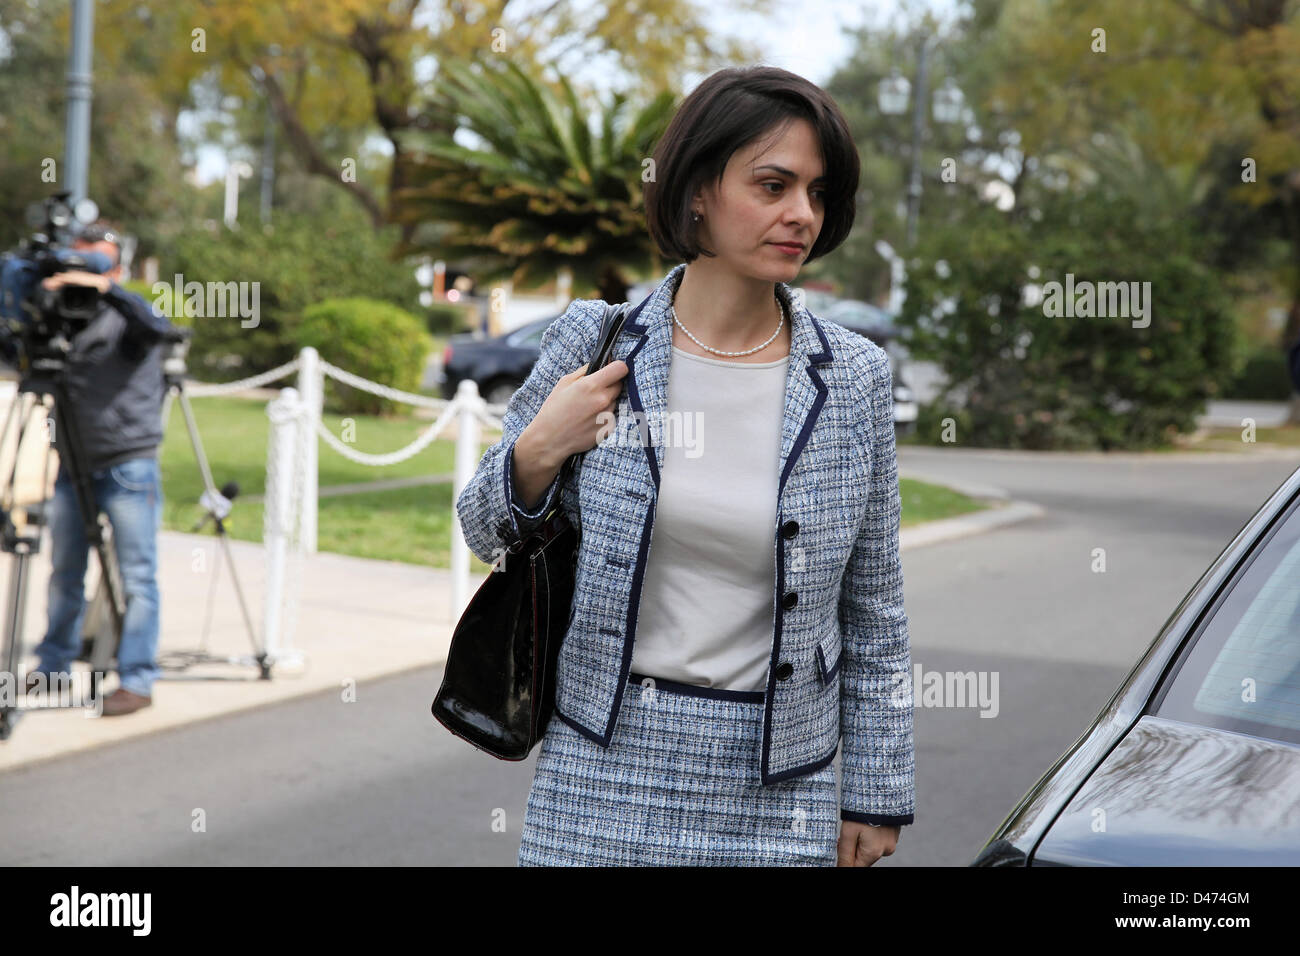 Nicosia, Cyprus. 7th March 2013. Delia Velculescu from IMF arriving at the Presidential Palace in capital Nicosia - Stock Image